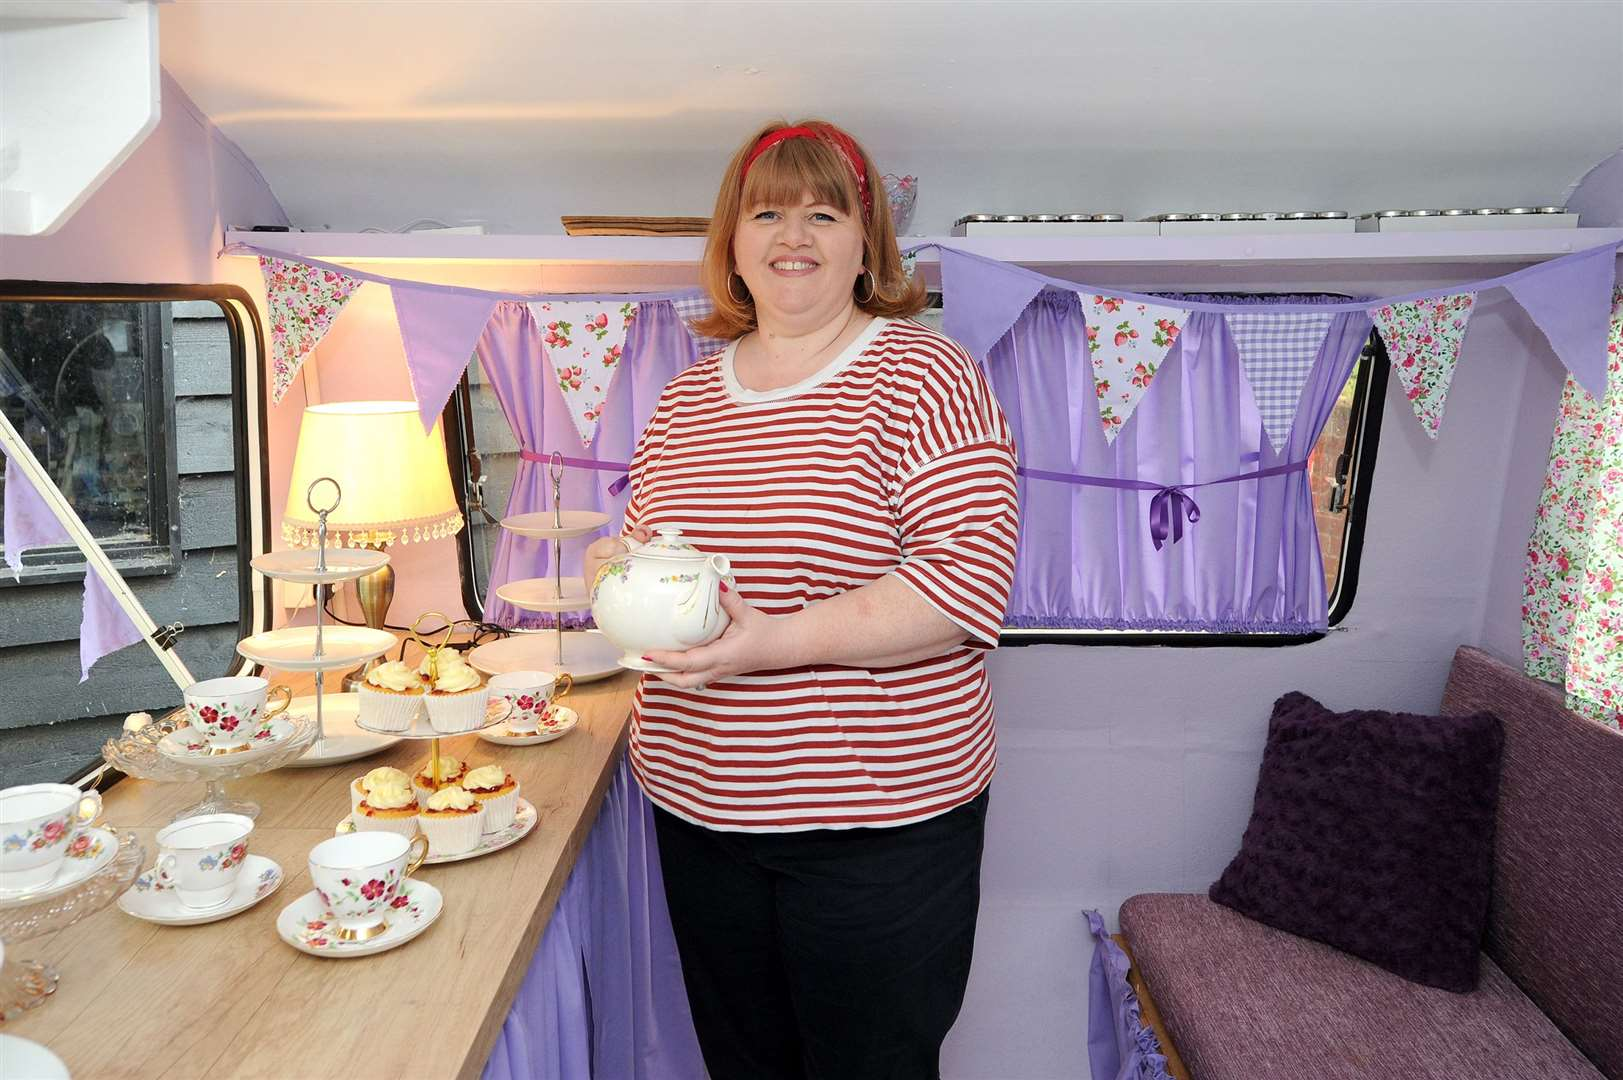 Nicola Littlejohn, who almost died from a brain haemorrhage after giving birth to her son 12 years ago, has fought her way back to health and is now running own business baking cakes and has just launched her own mobile tearoom in a caravan.....PICTURE: Mecha Morton... (11751209)